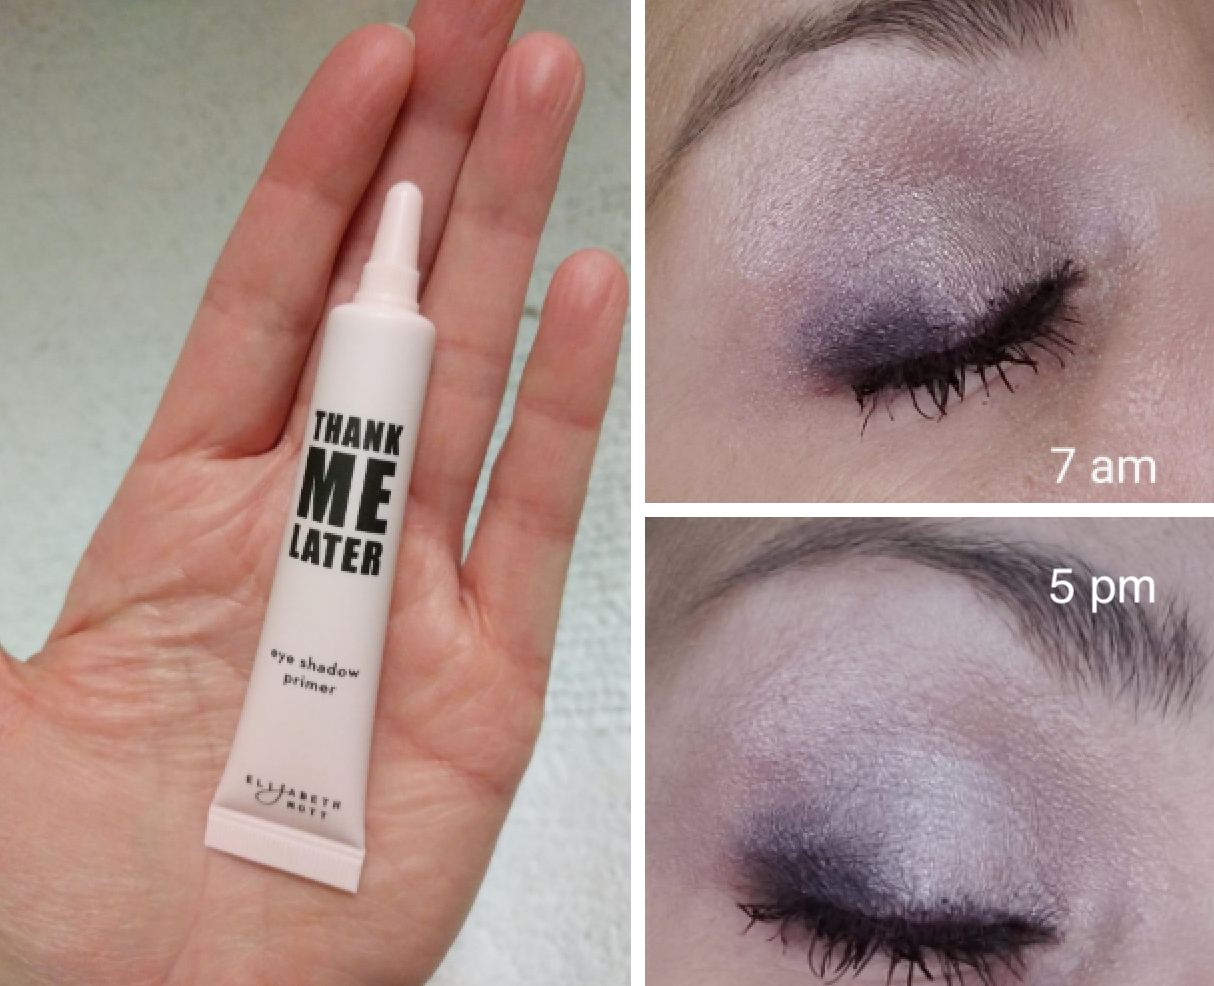 Reviewer's before and after picture when using Elizabeth Mott's Thank Me Later primer. The after pic is taken 10 hours later, and the eyeshadow is in tact with no smudging or creasing.